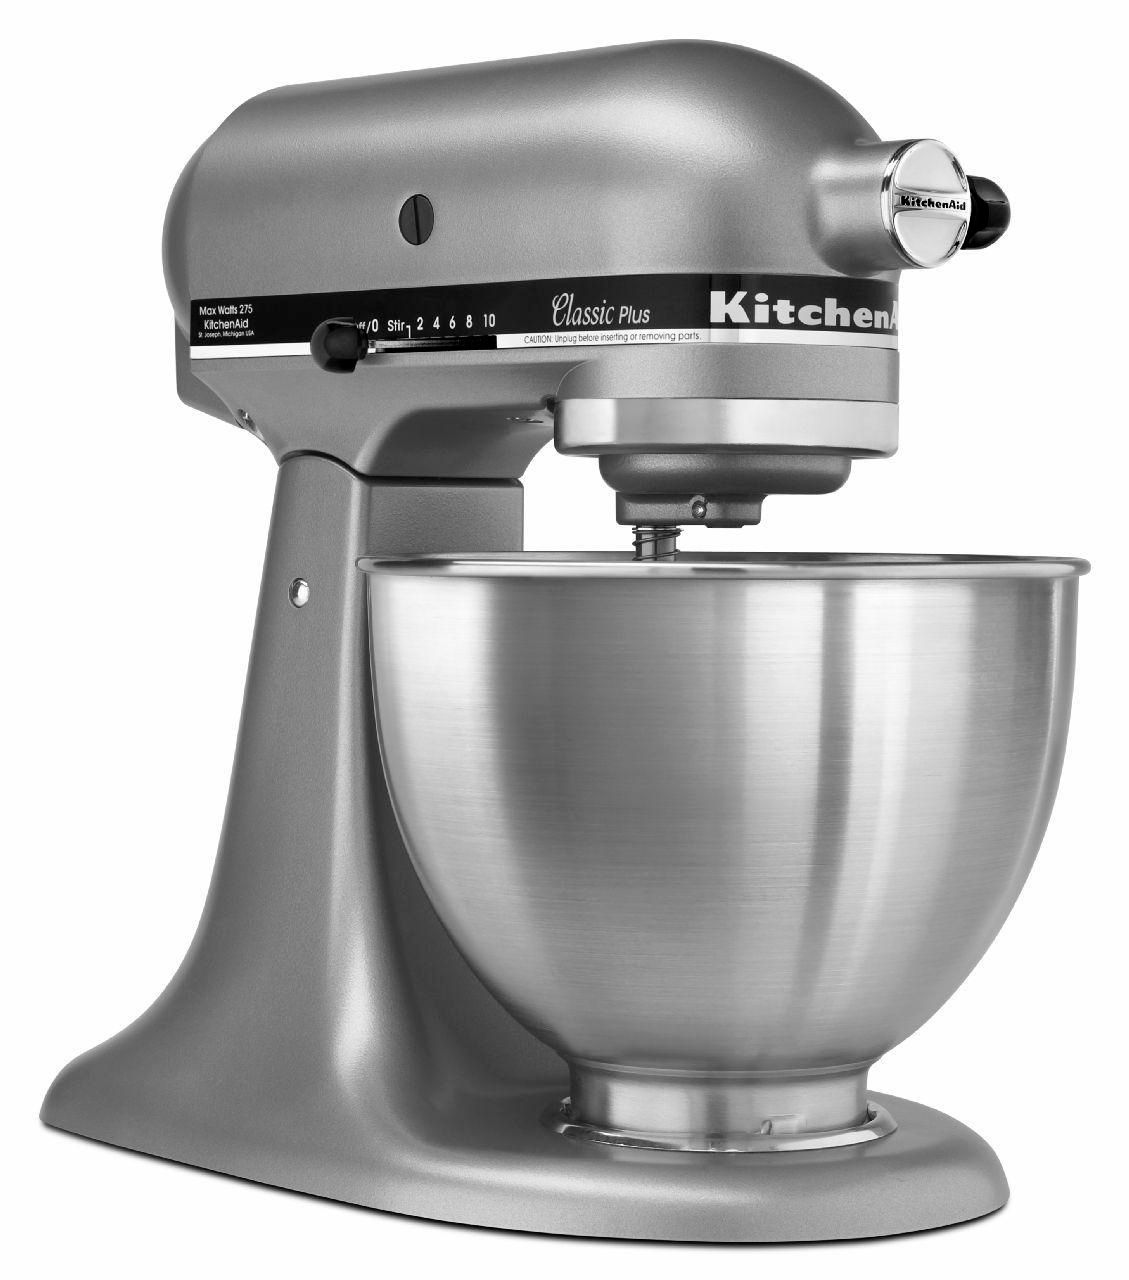 kitchen aid appliance home depot handles kitchenaid 275w ksm75sl classic plus stand mixer walmart canada